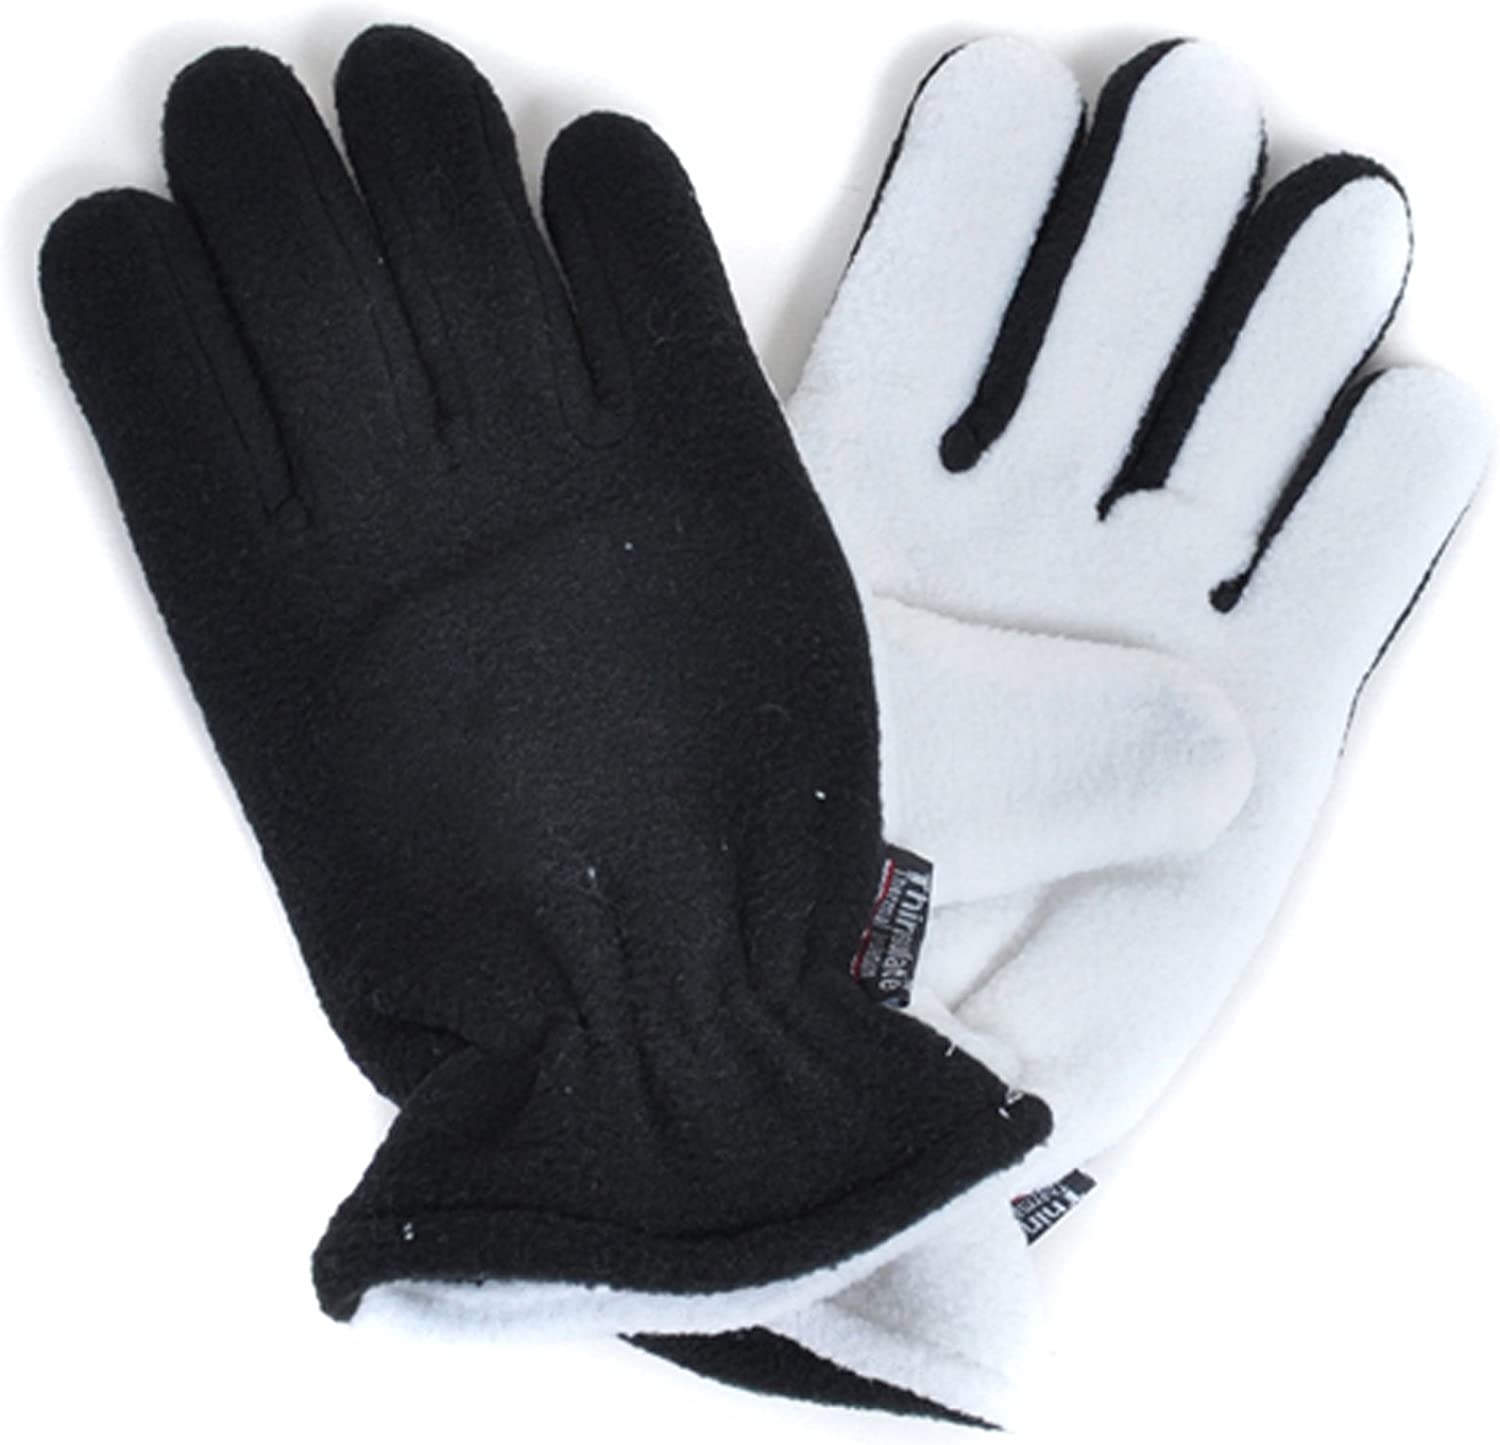 Women's Thermal Insulated Fleece Gloves